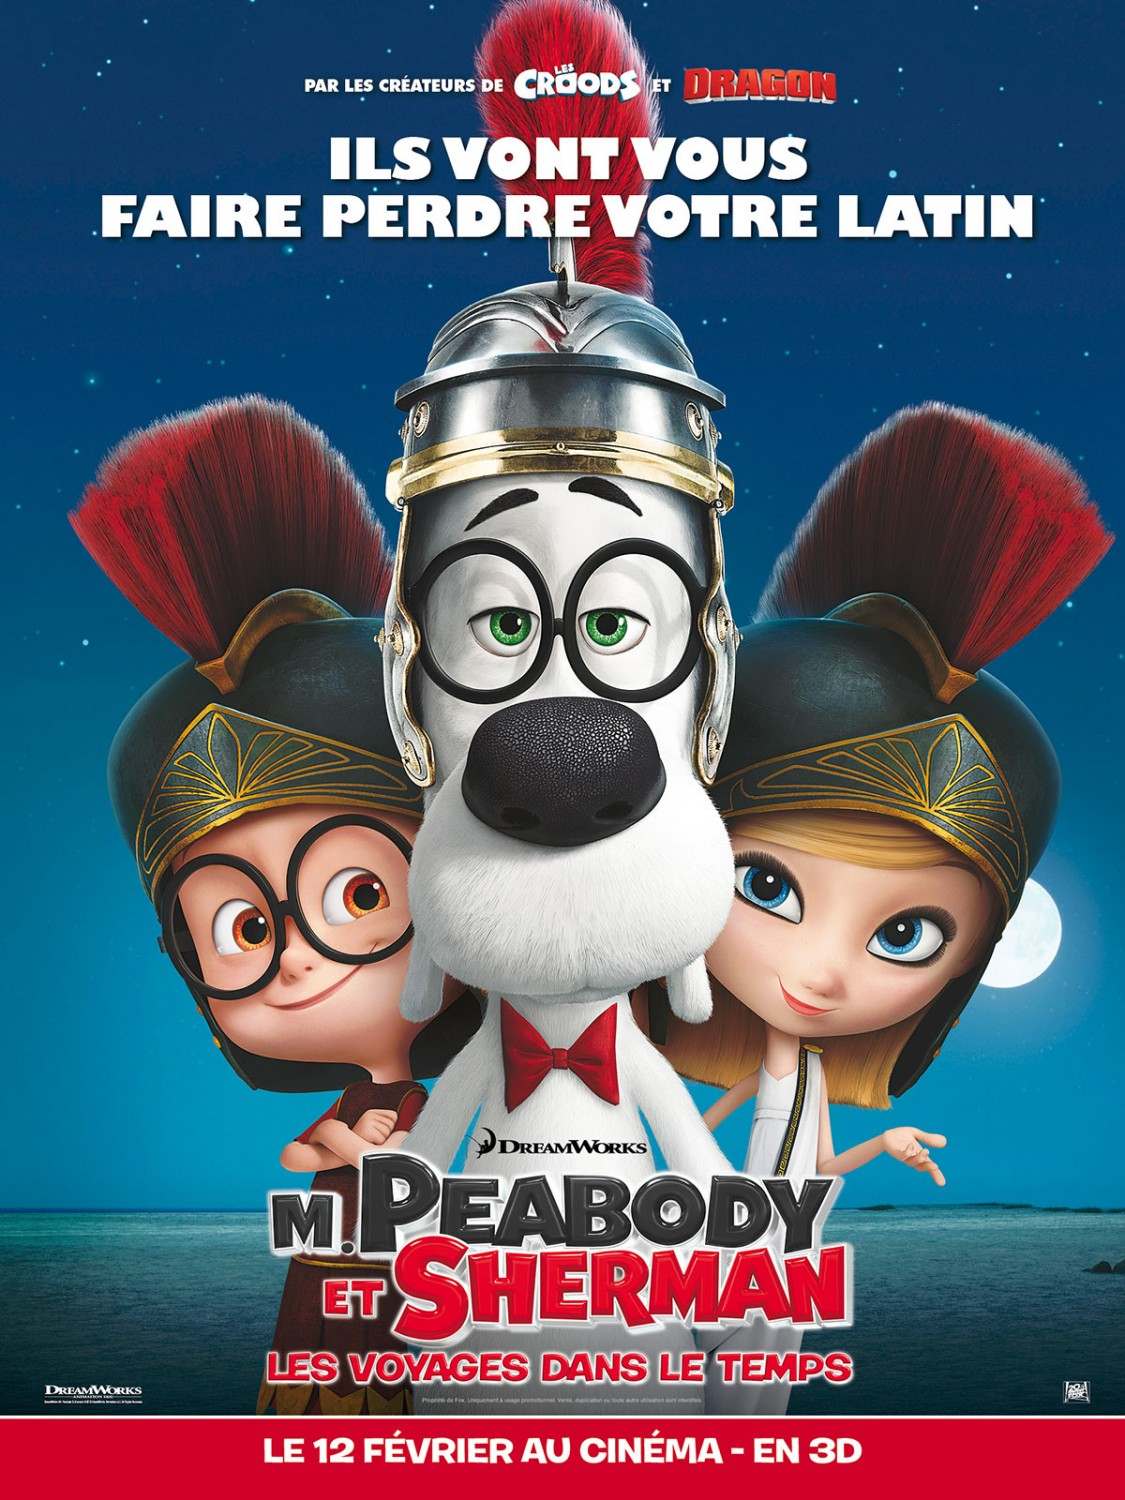 Mr Peabody and Sherman Movie Clip Art